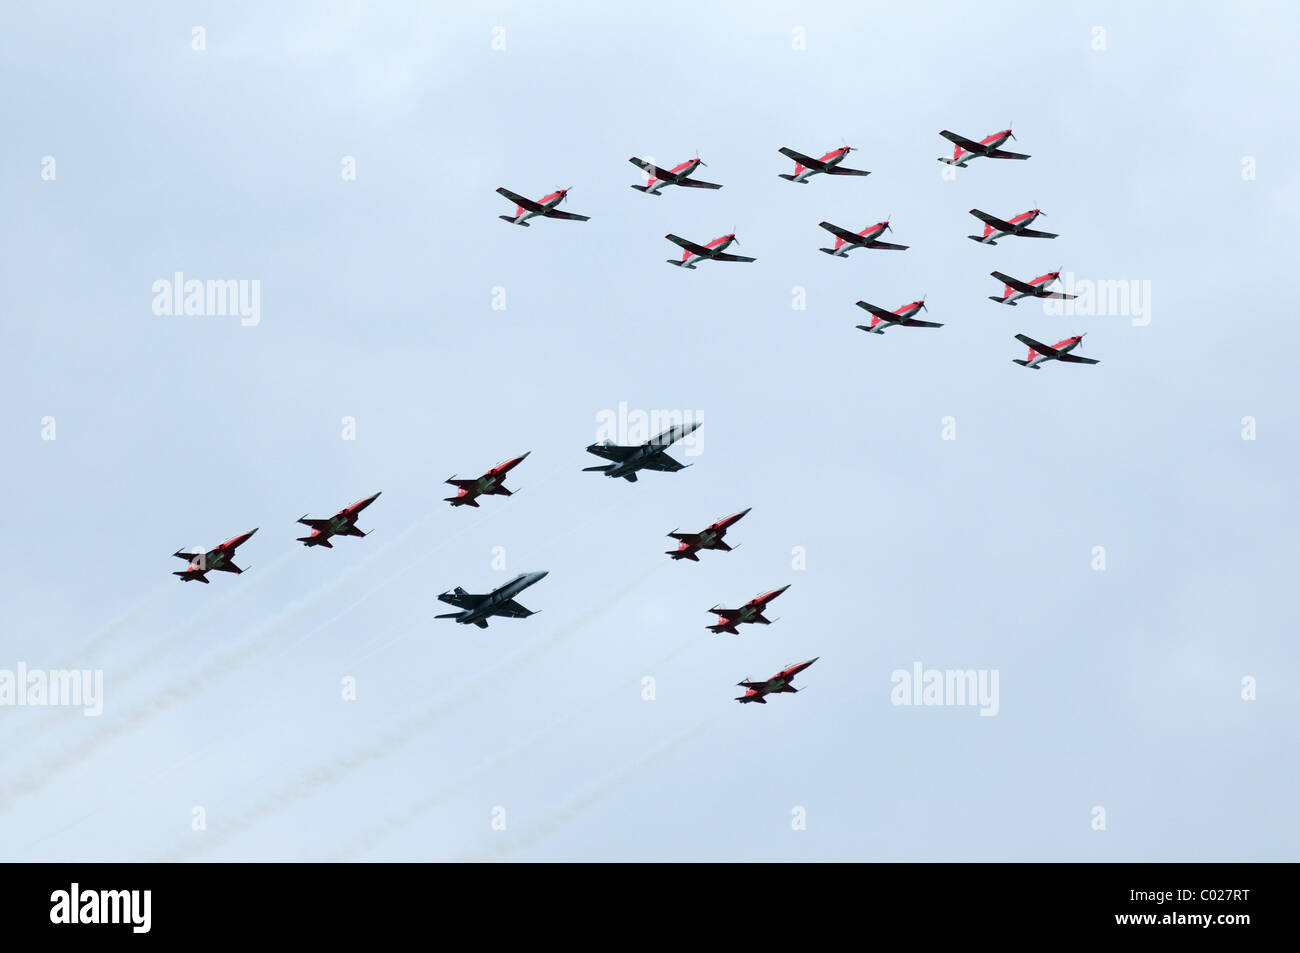 PC-7 Team followed by the FA-18 and Patrouille Suisse, Emmen, Switzerland, Europe - Stock Image